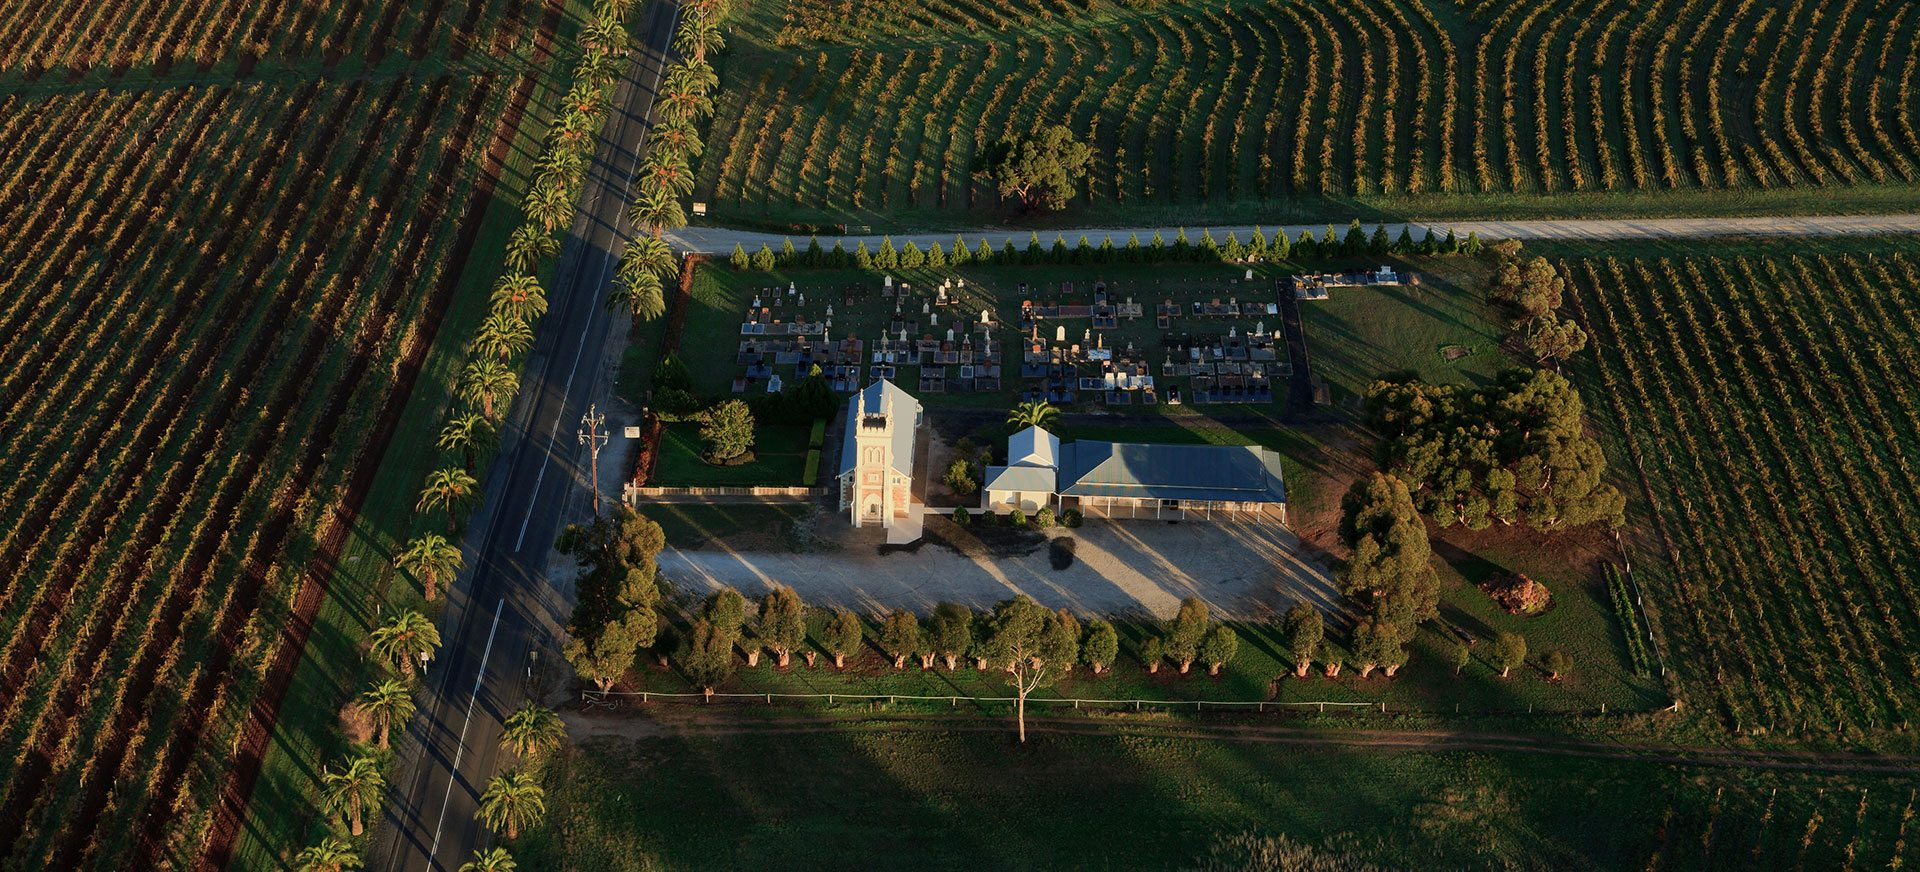 Hot air ballooning over the Barossa Valley